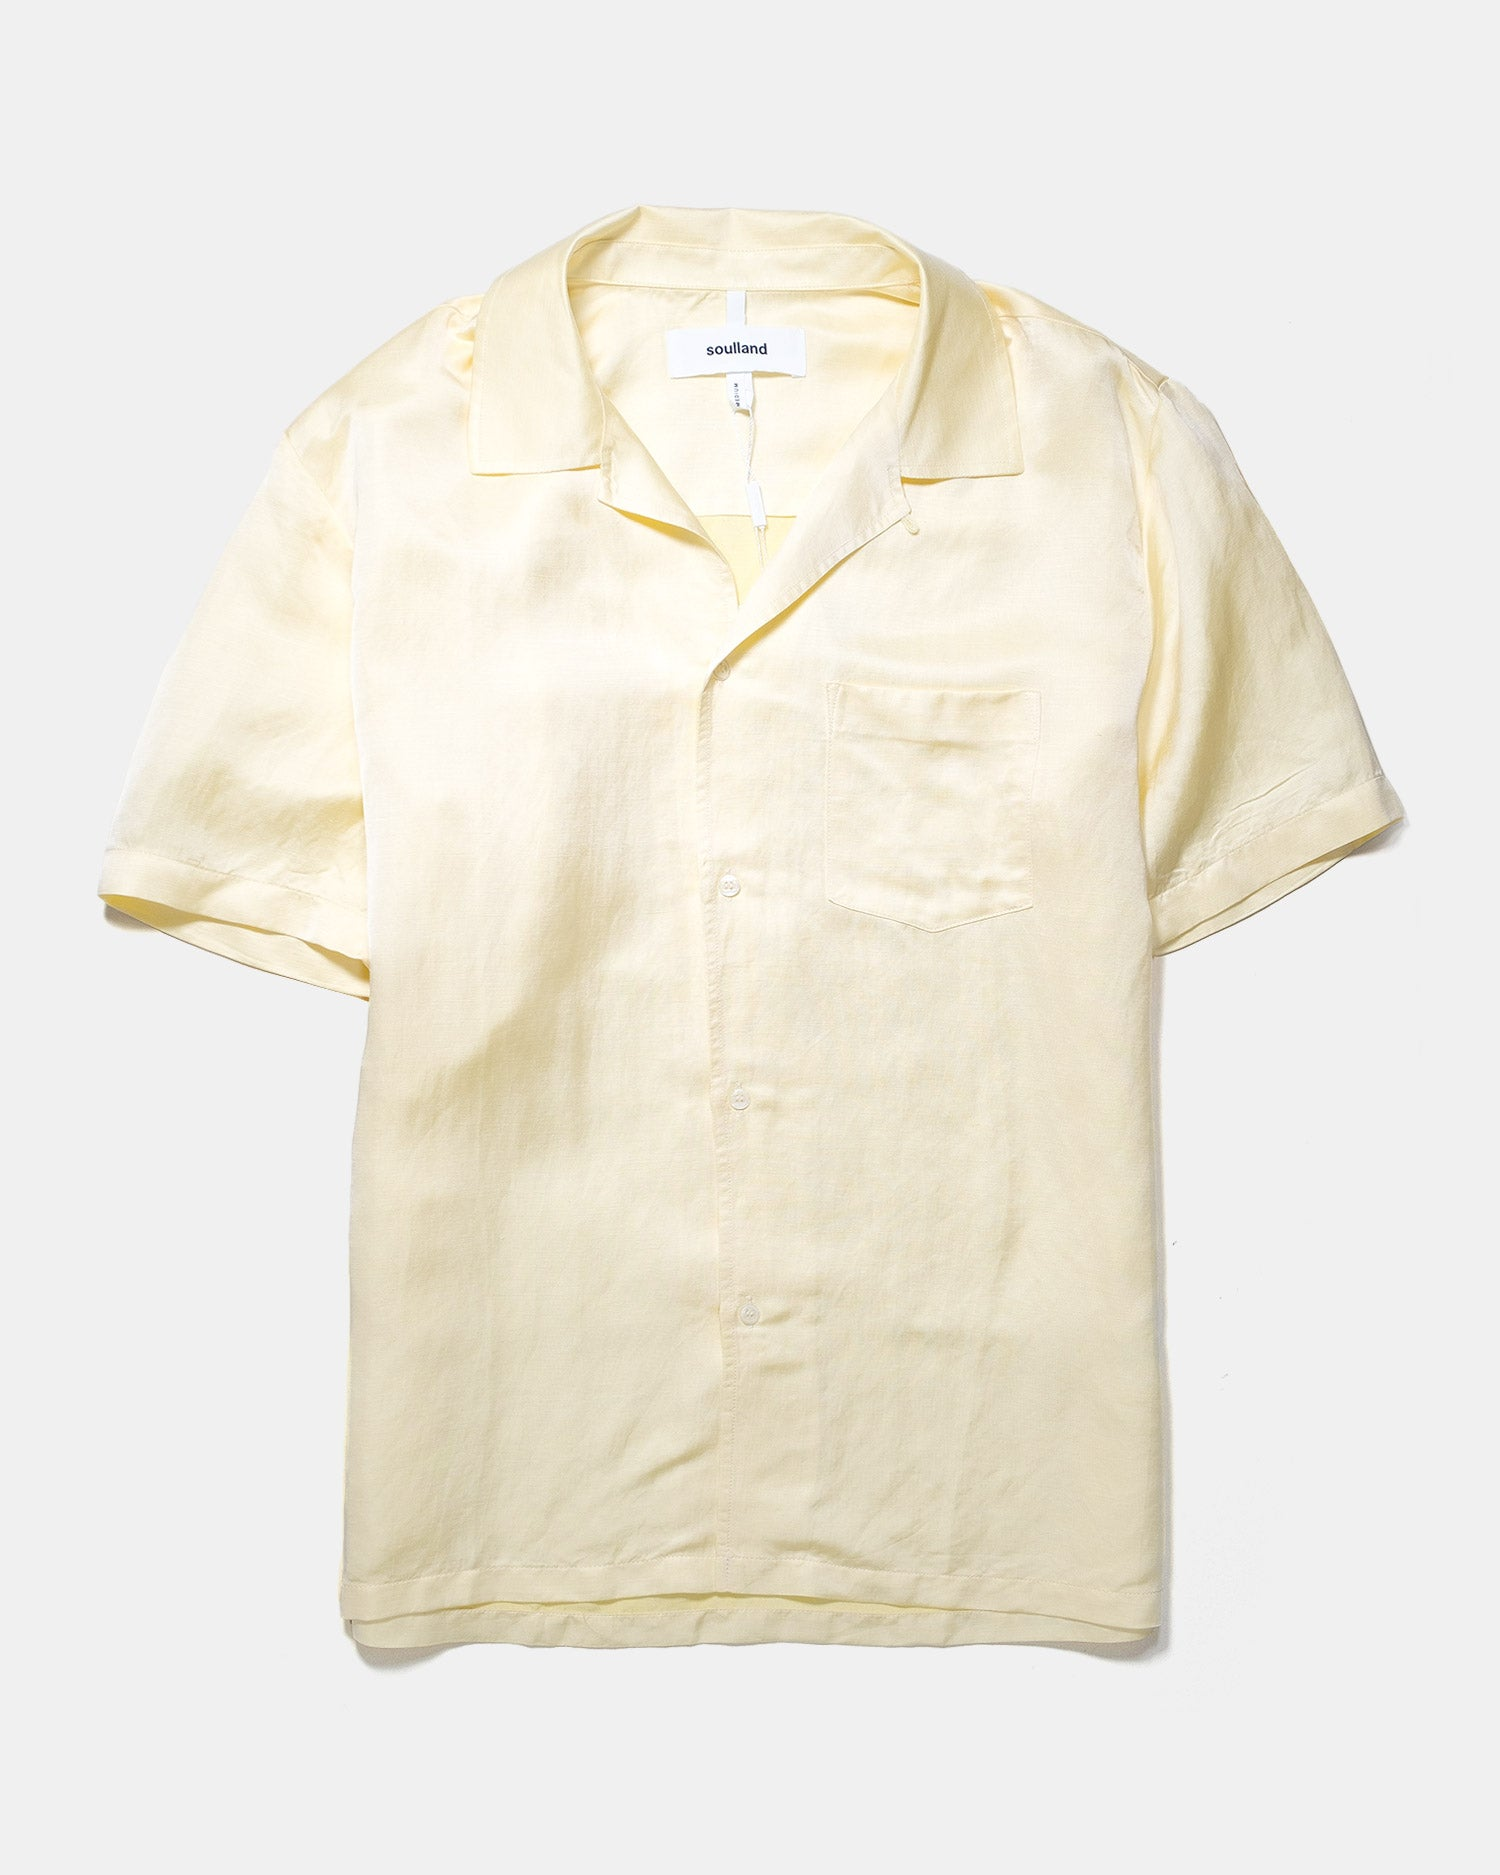 Soulland Ryan Shirt Yellow